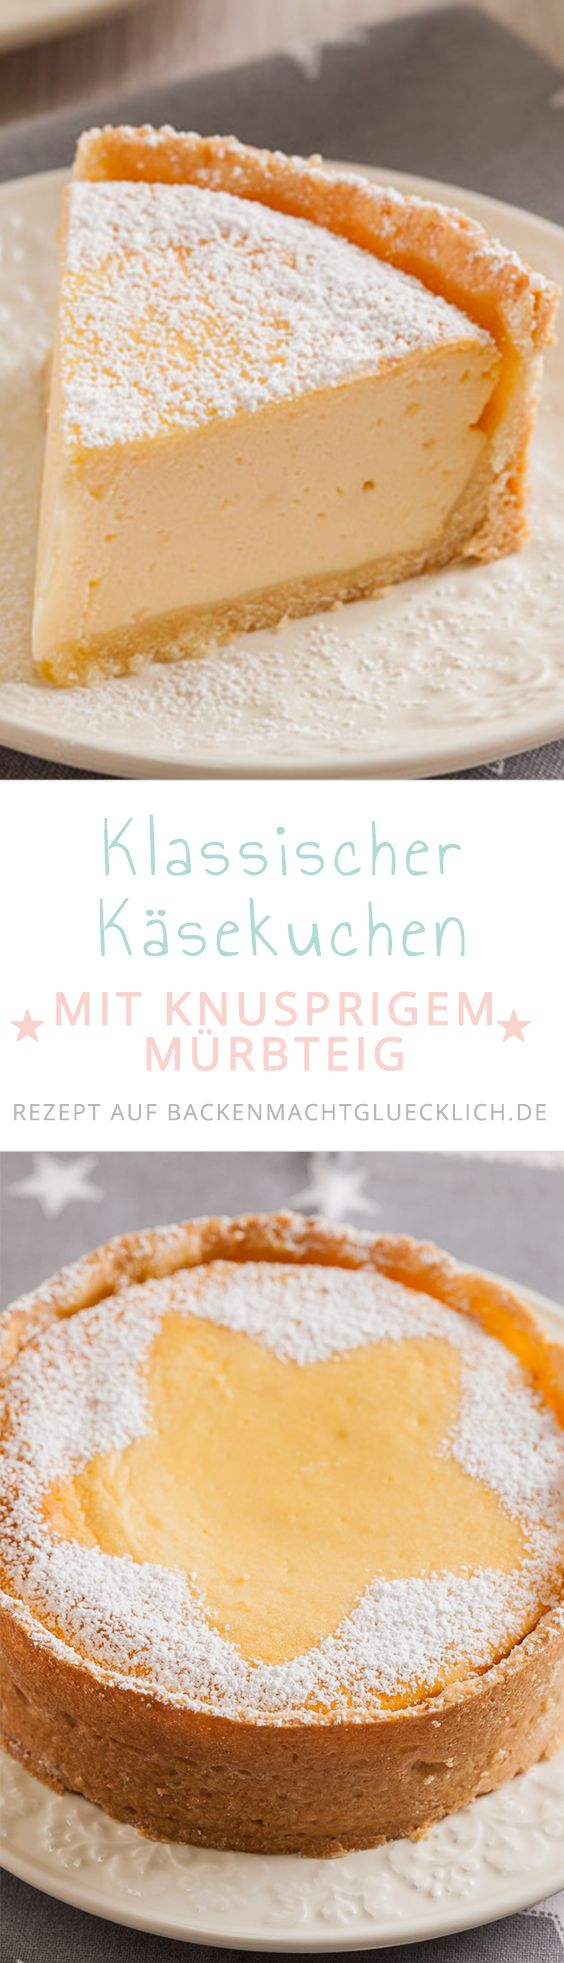 die besten 25 k sekuchen ideen auf pinterest apfel k sekuchen apfelkuchen k sekuchen und. Black Bedroom Furniture Sets. Home Design Ideas